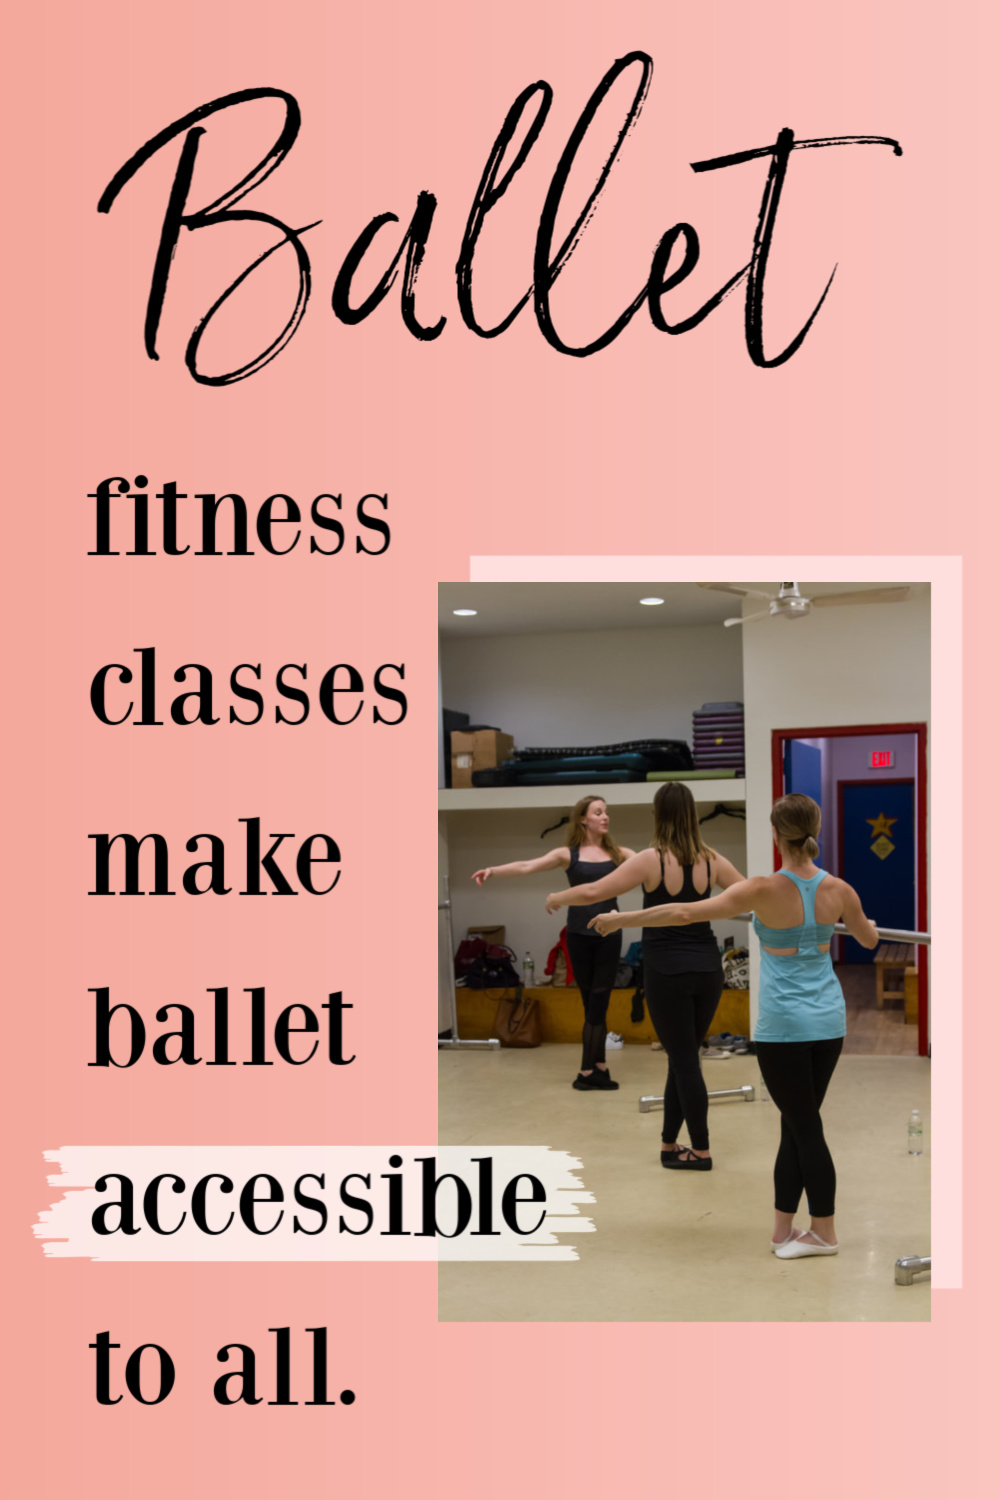 Ballet fitness makes ballet accessible to all.